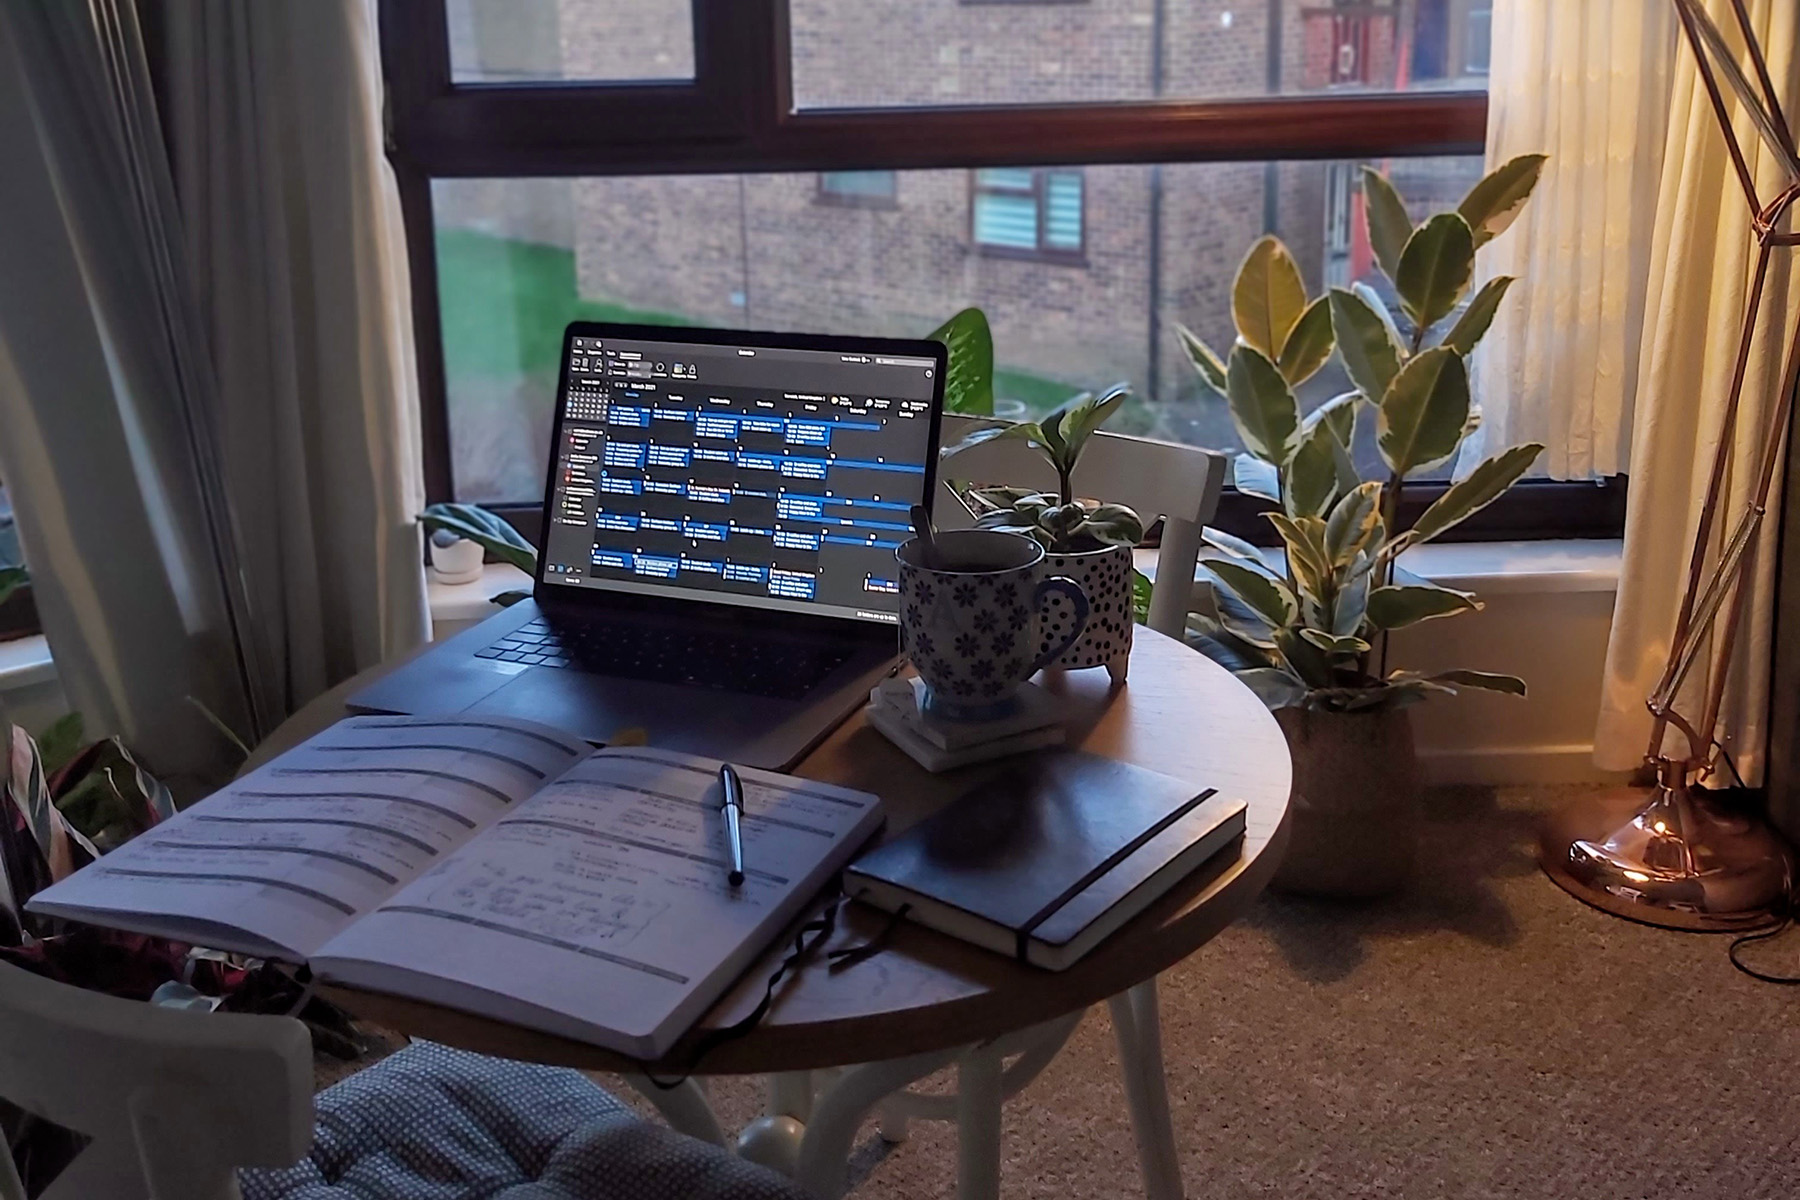 Anita's desk at home surrounded by houseplants in front of her window, with her laptop, an open planner and cup of coffee.